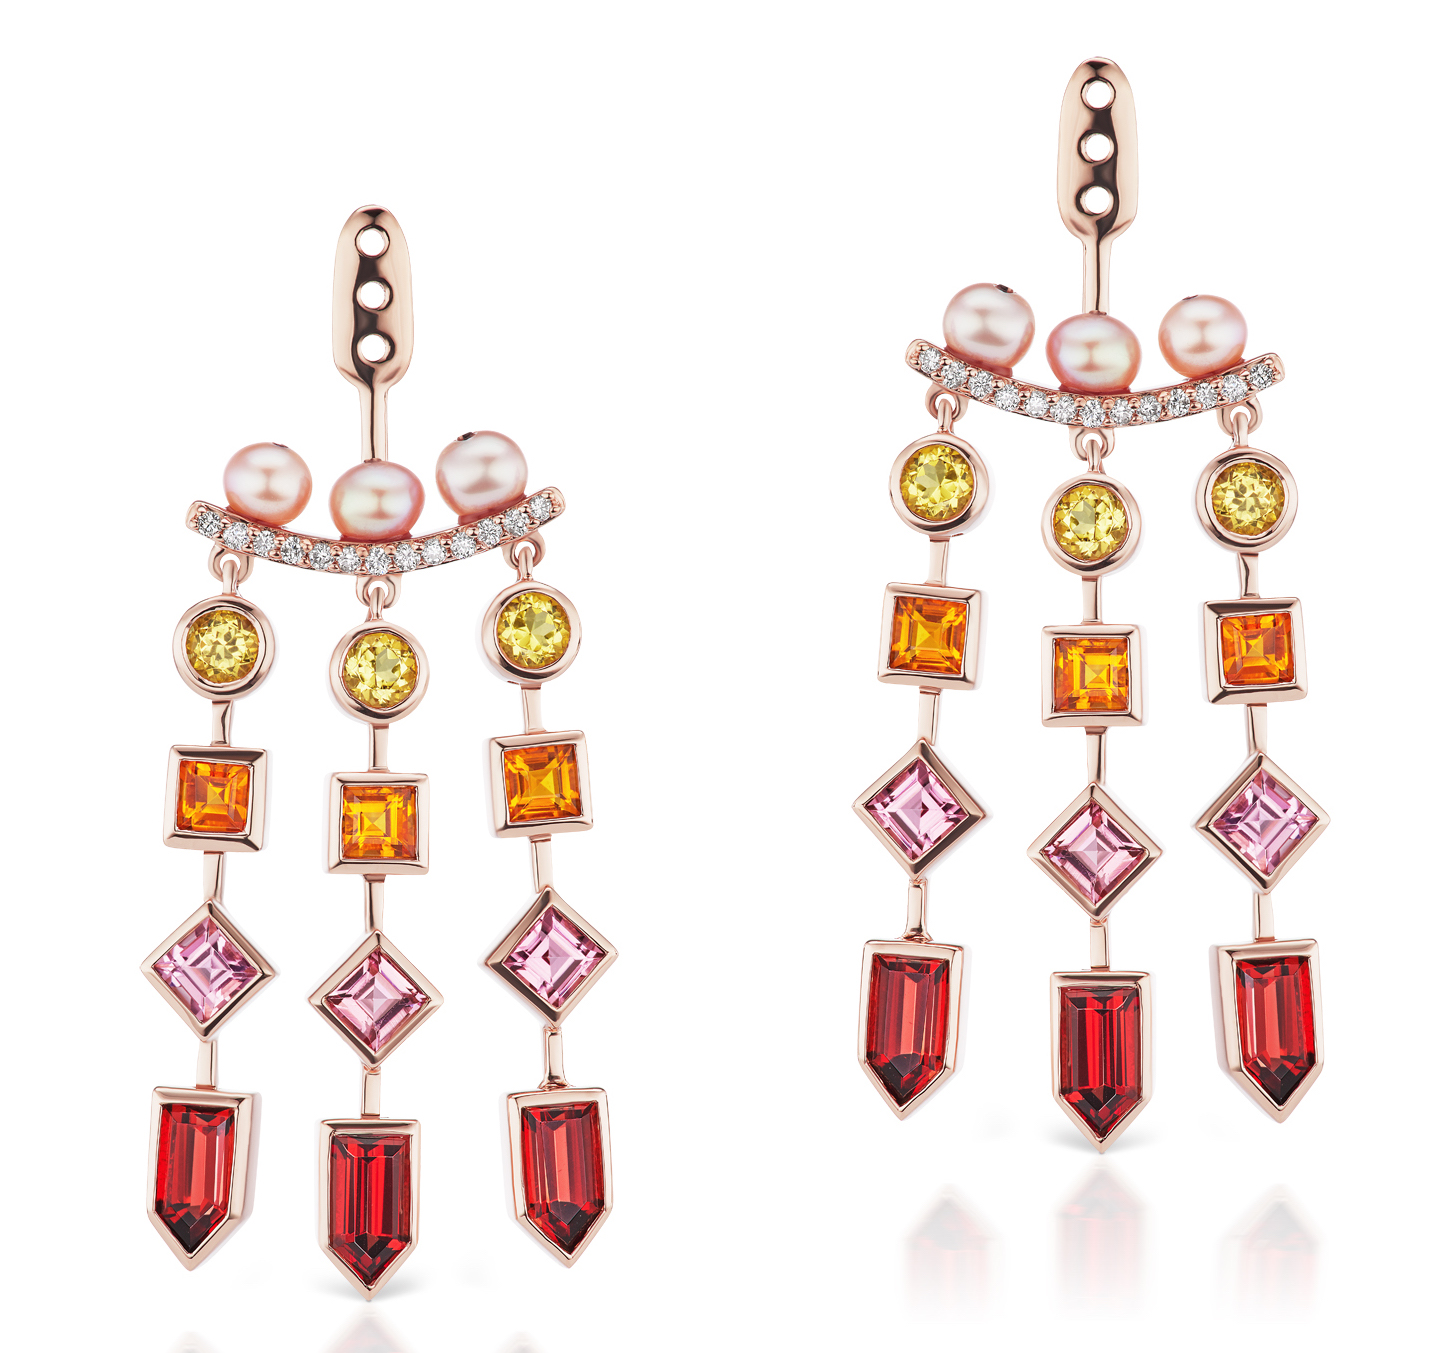 Jane Taylor Cirque chandelier earring jackets | JCK On Your Market